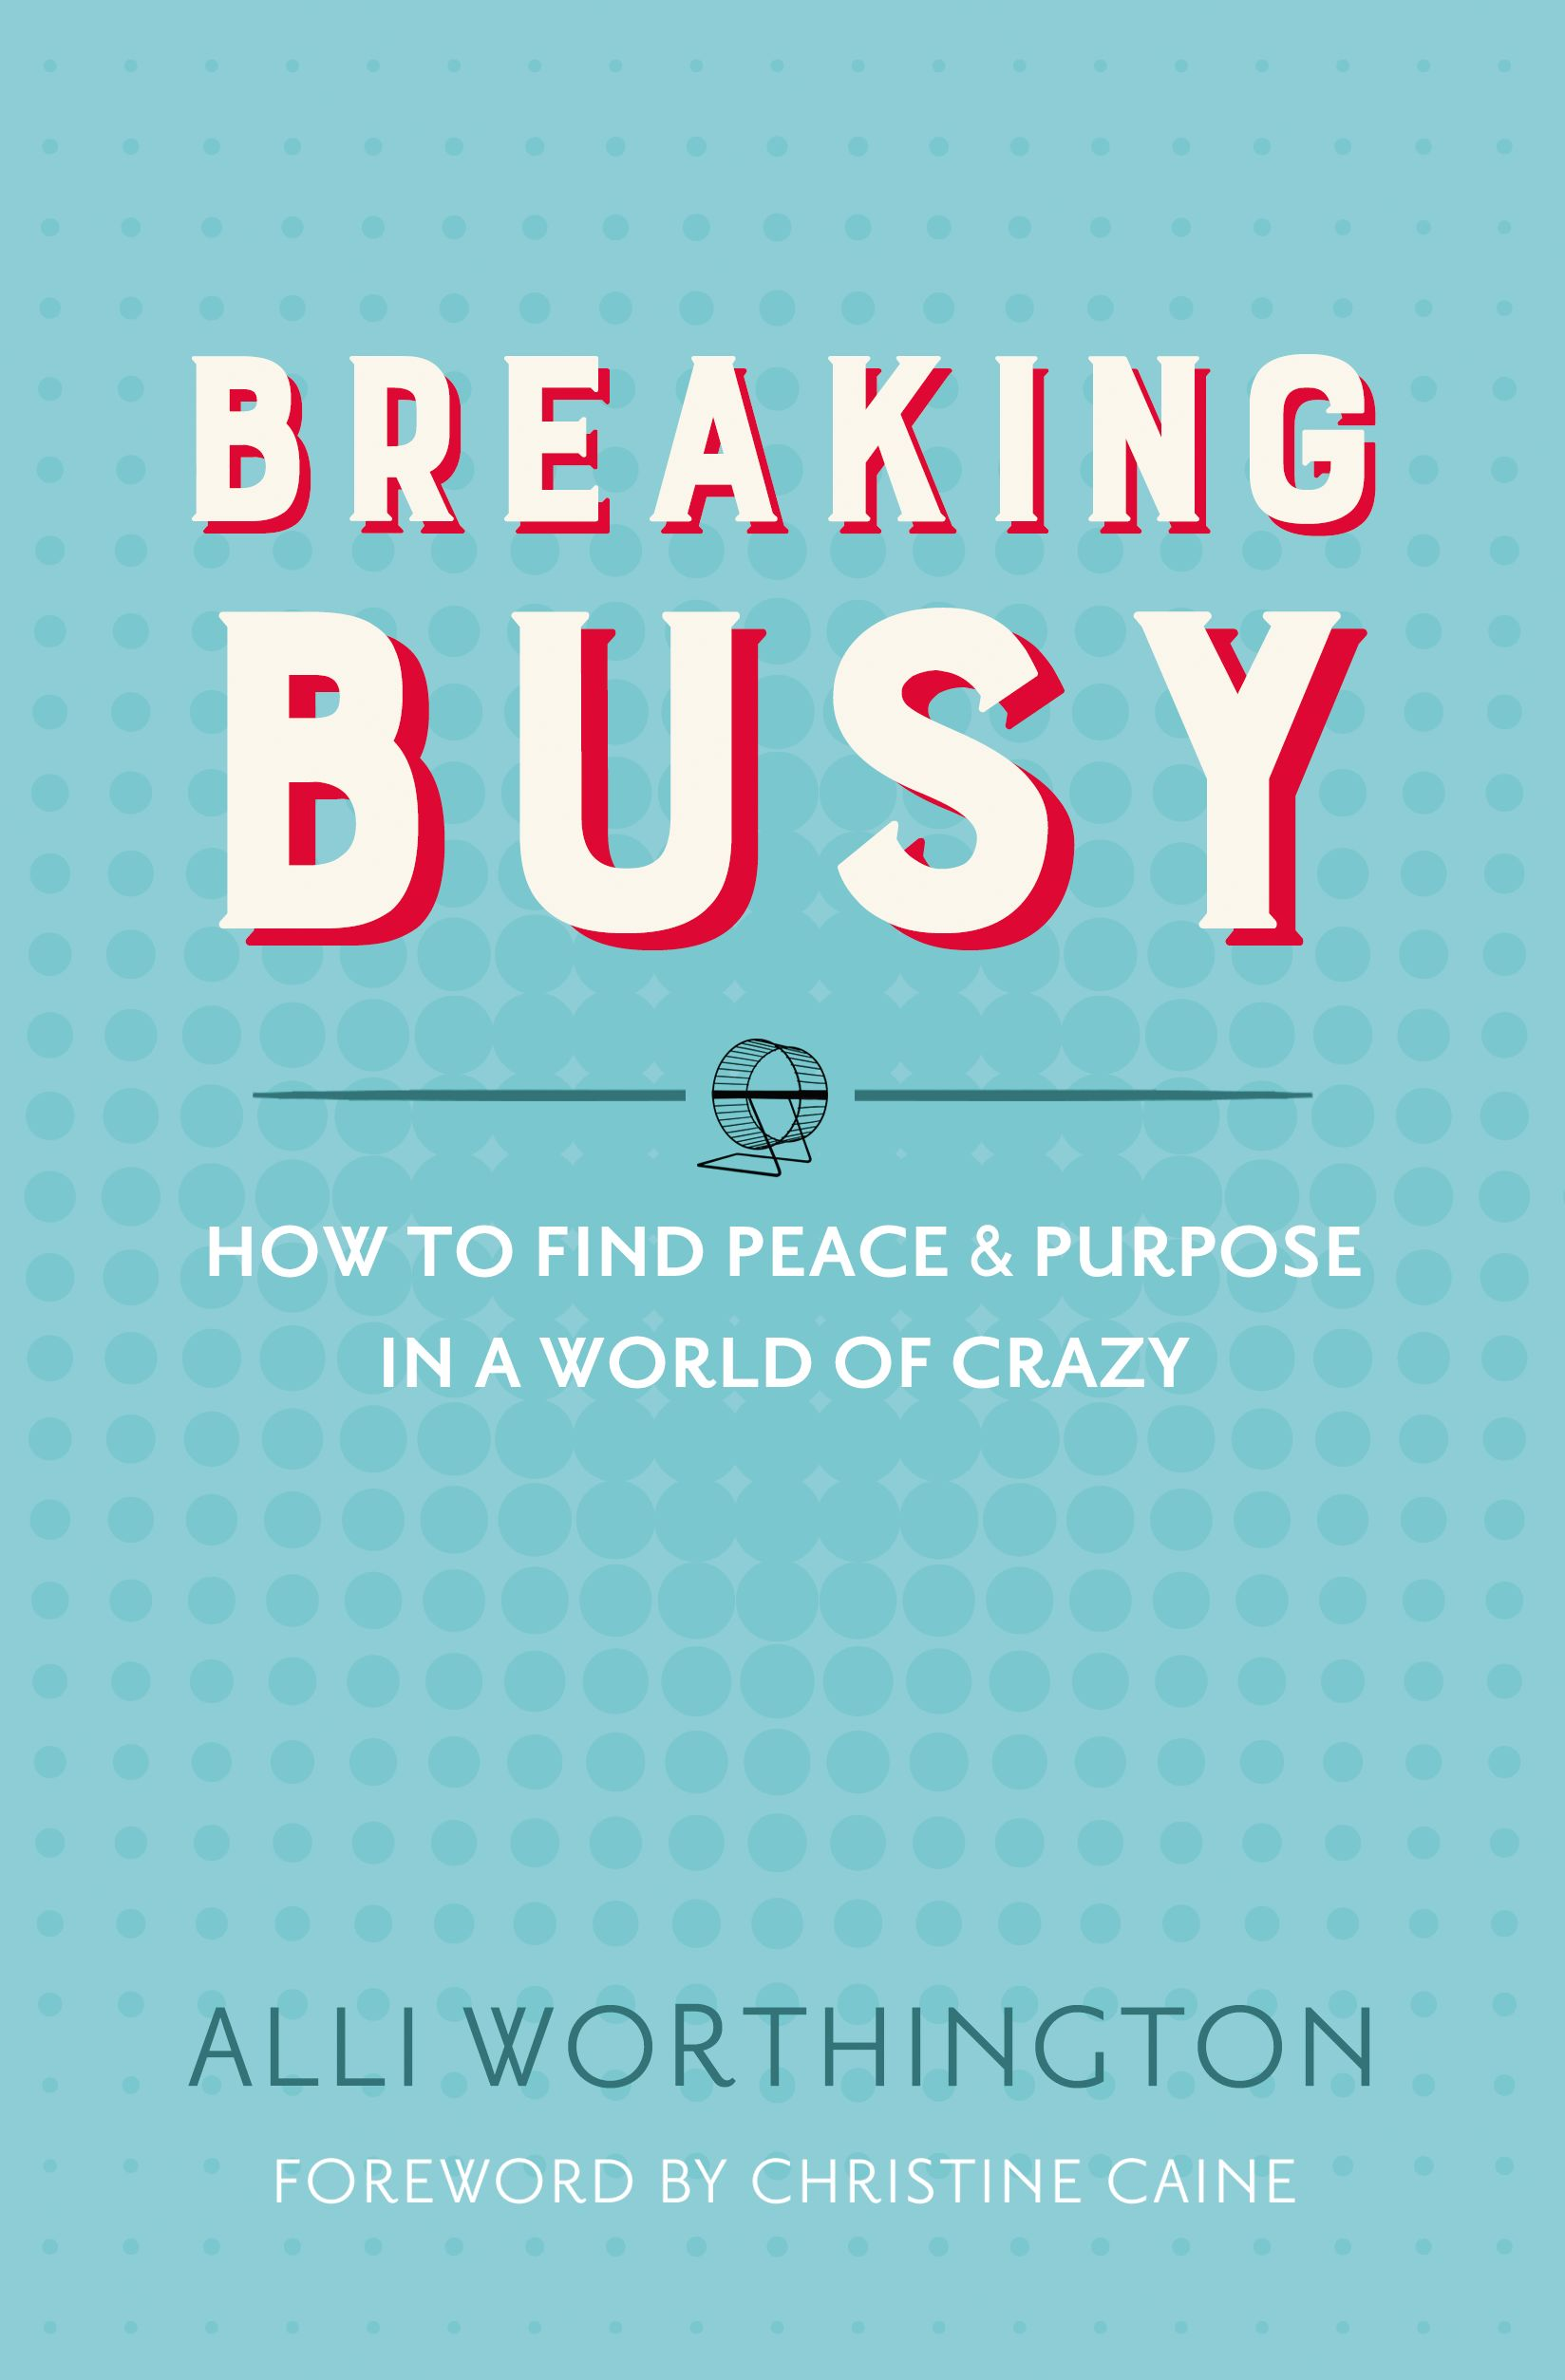 Breaking Busy: A Book Review   Making the Most Blog